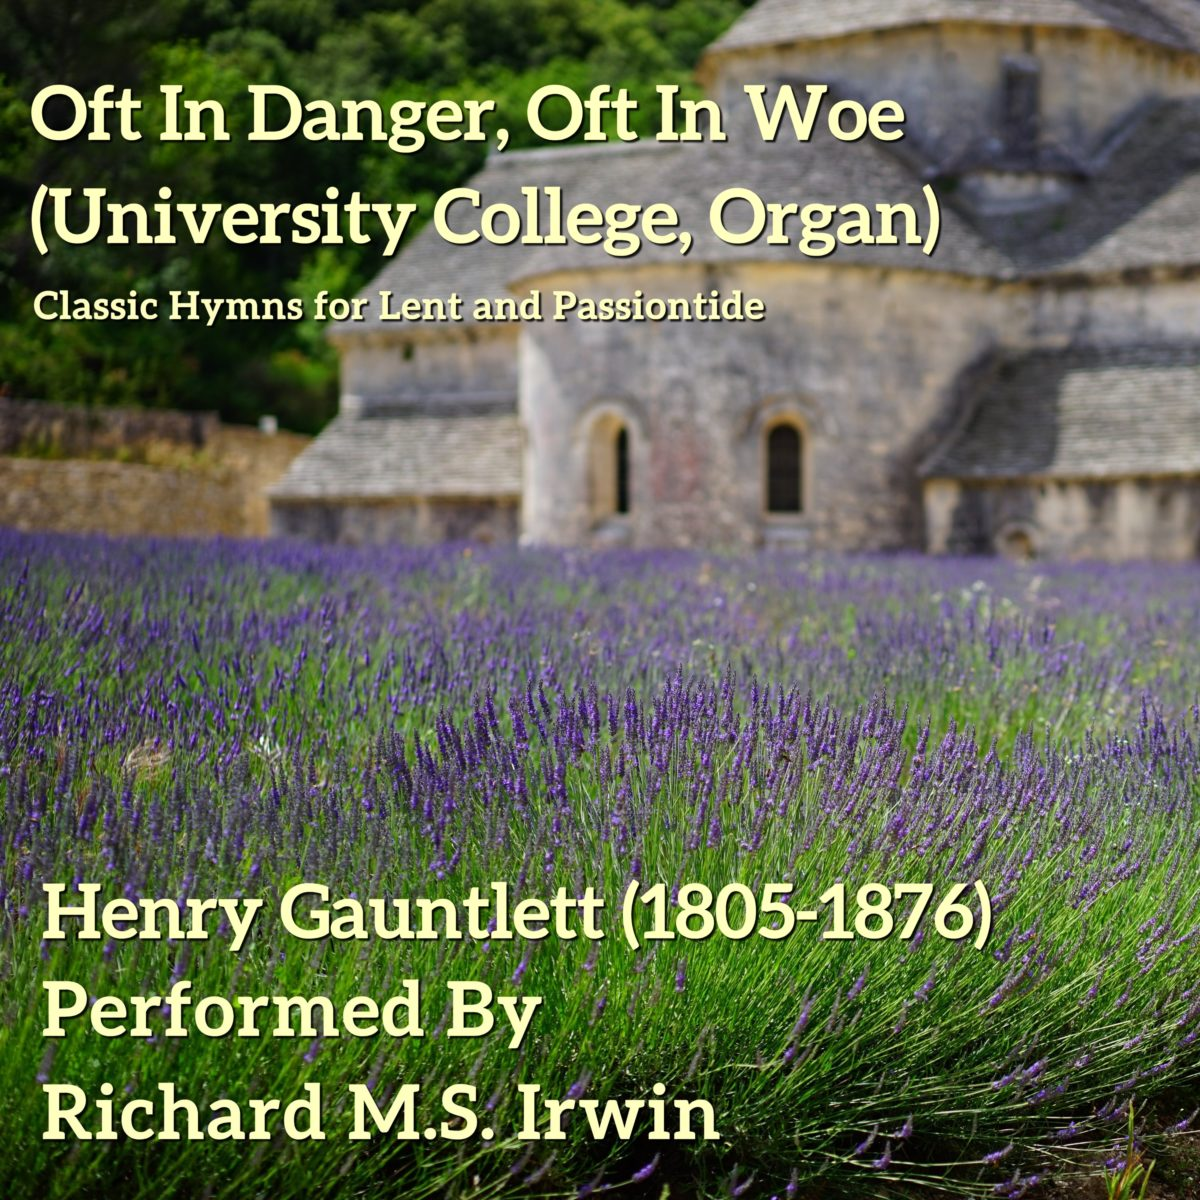 Oft In Danger, Oft In Woe (University College, Organ, 5 Verses)